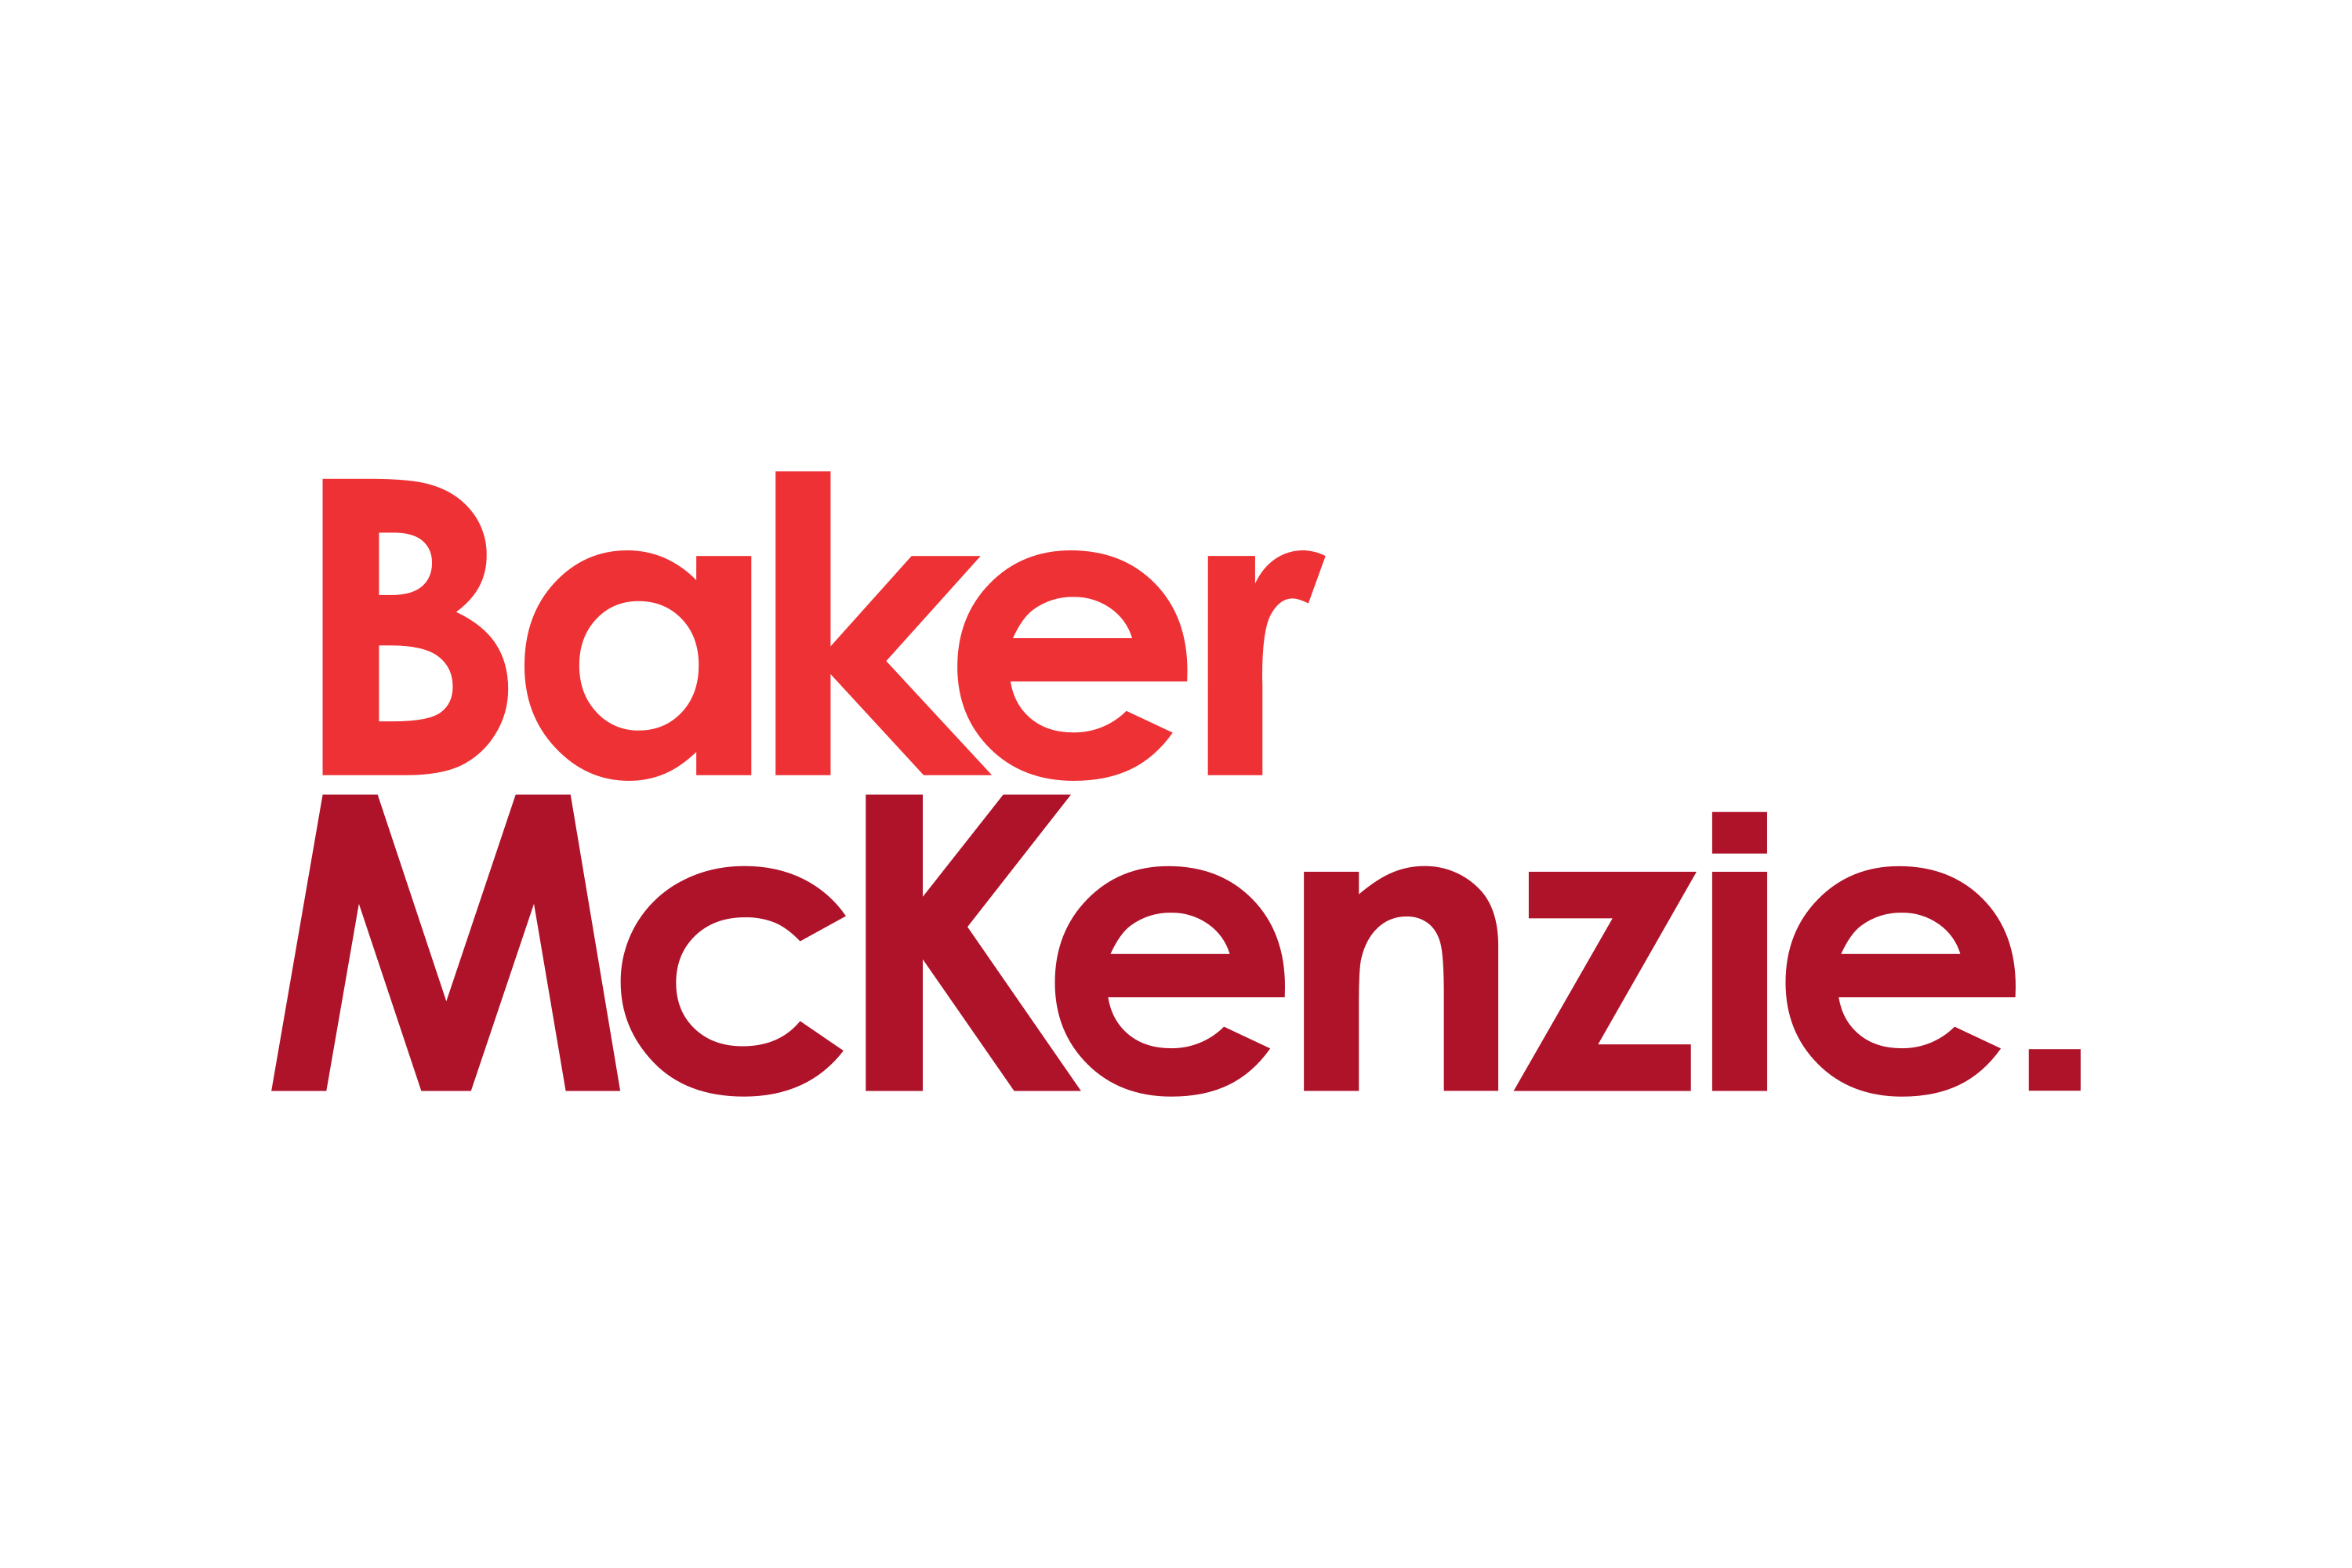 Download Baker McKenzie Logo in SVG Vector or PNG File Format ...